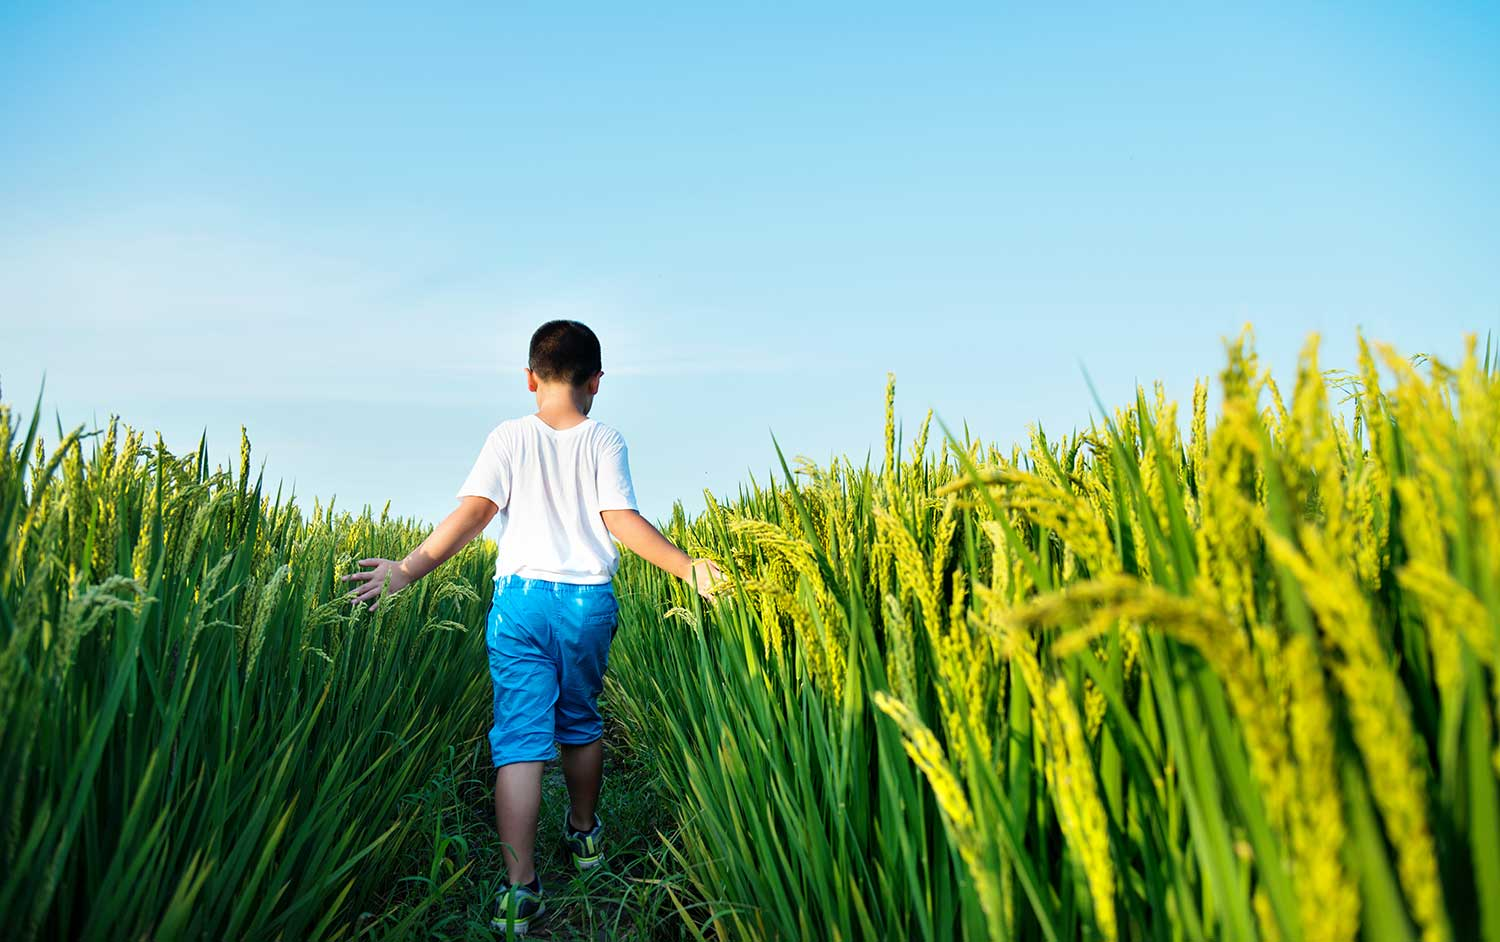 Child in crop field.